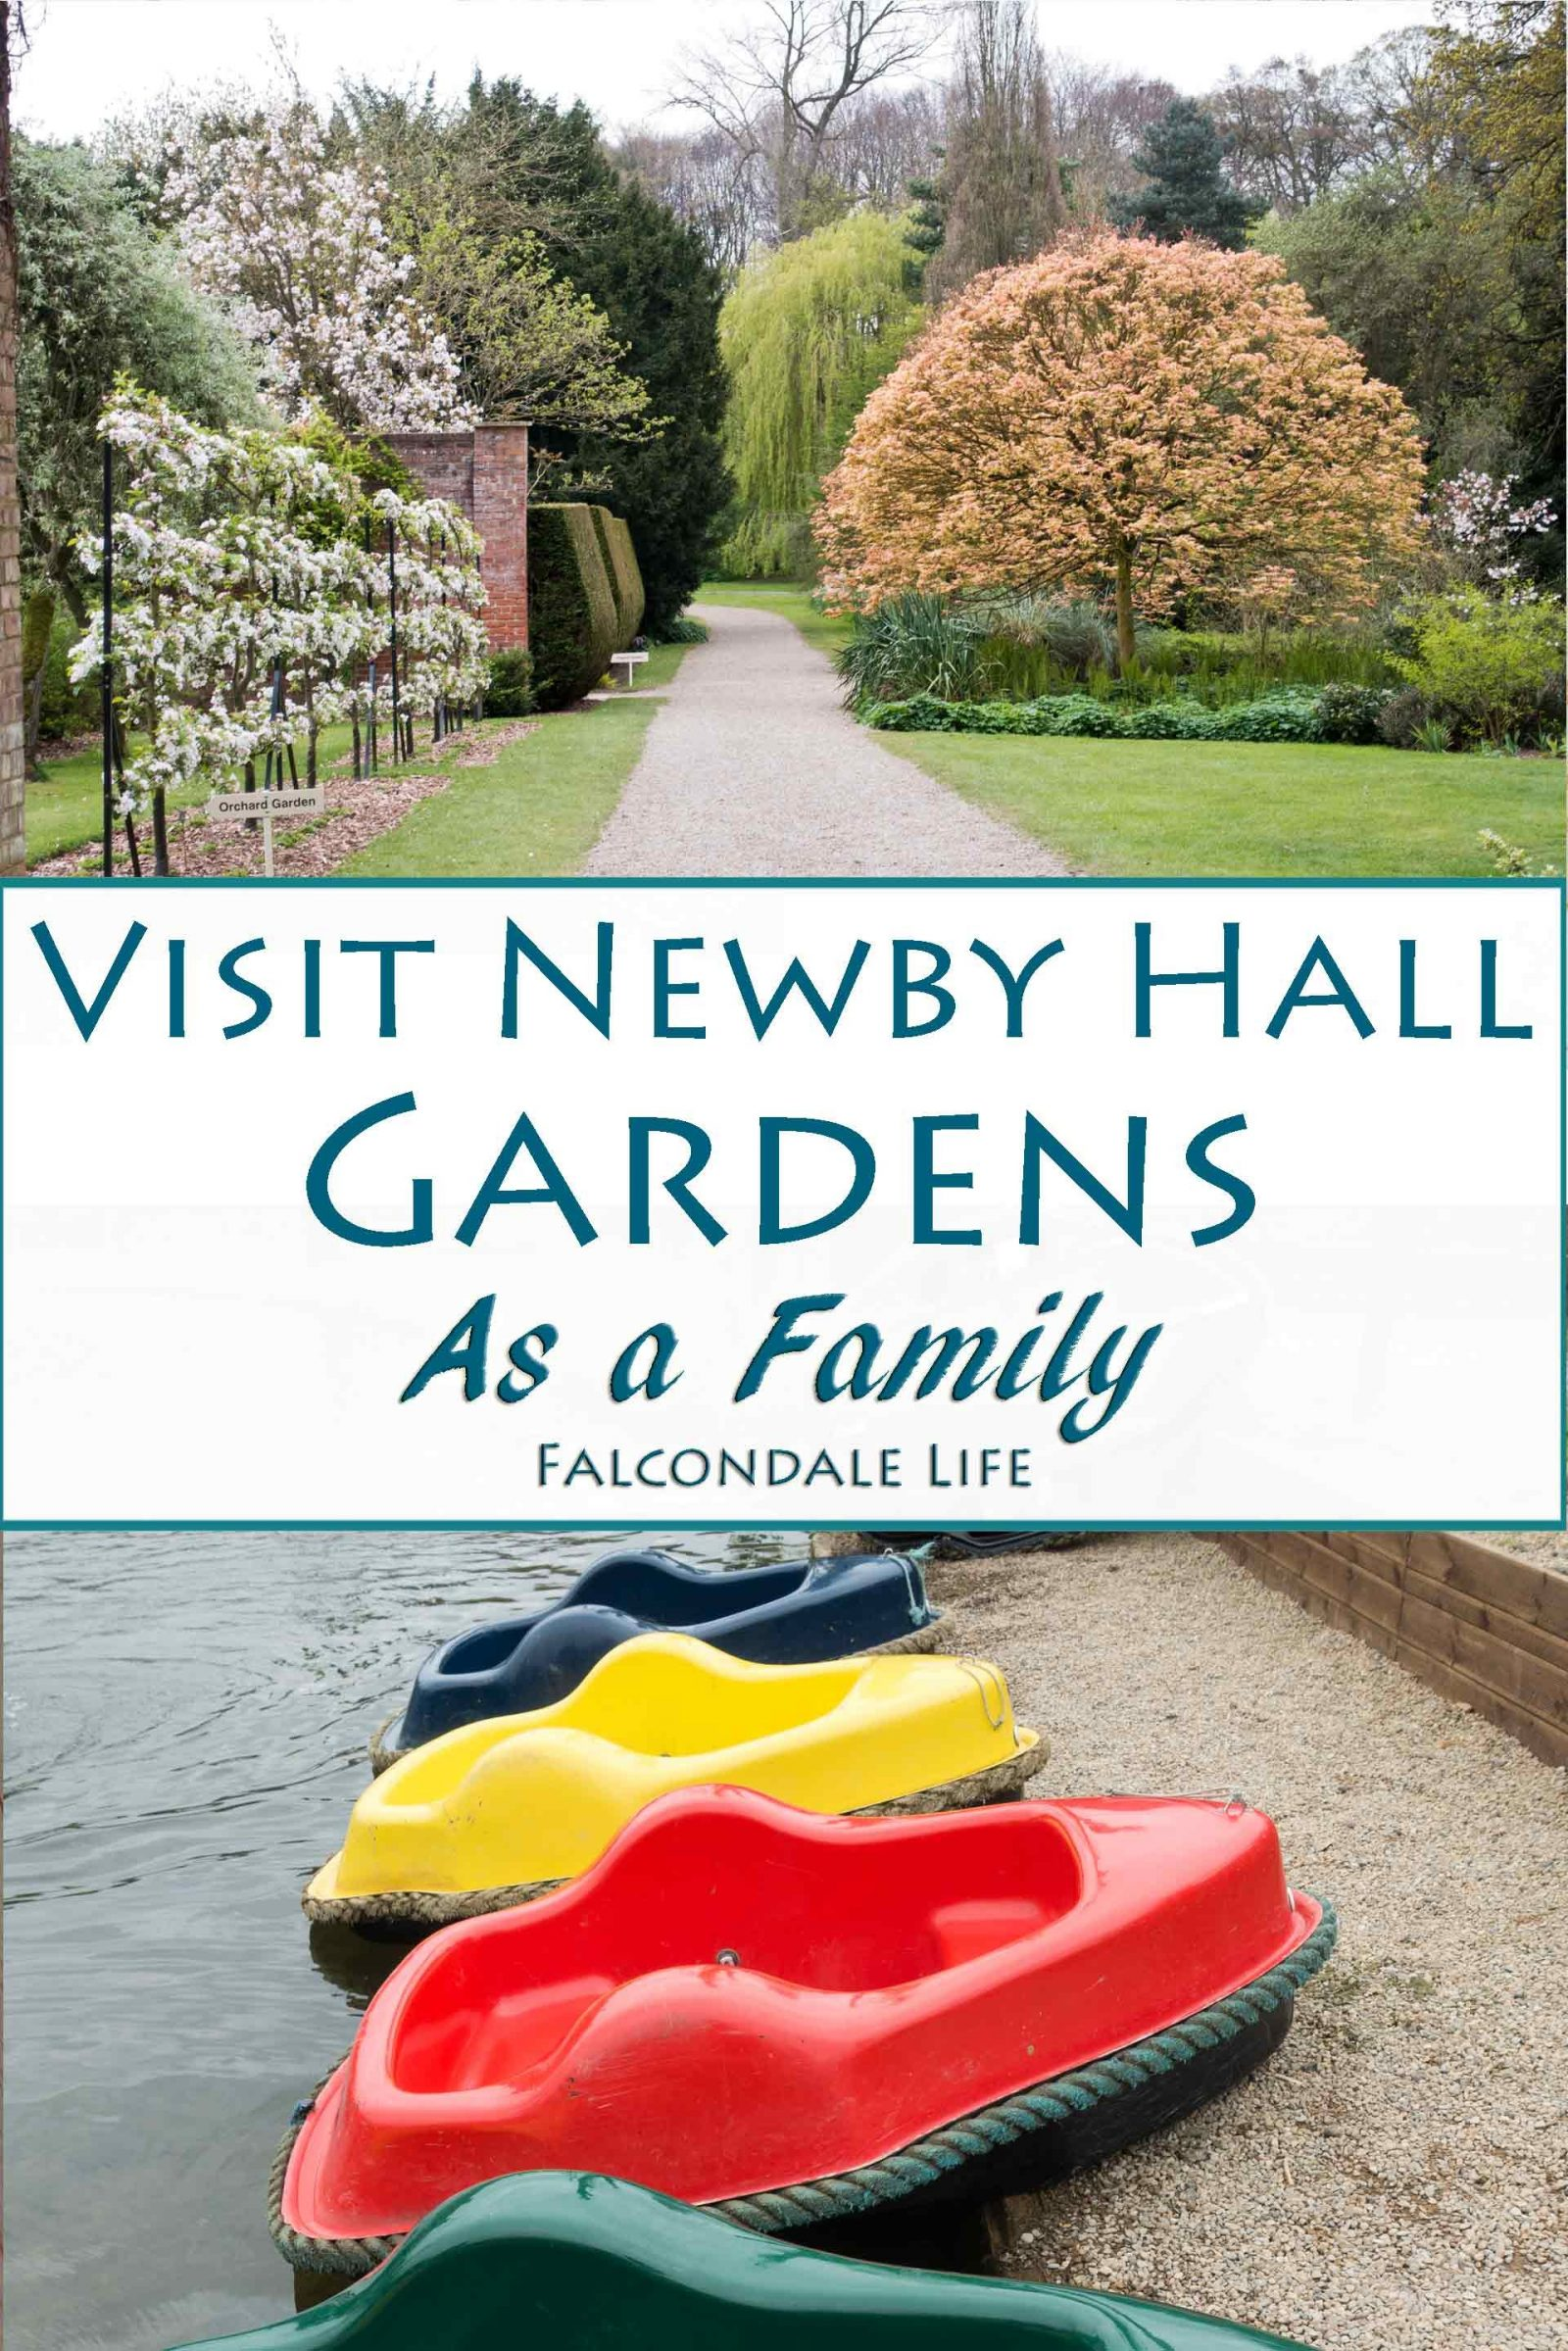 Visit Newby Hall Gardens as a Family